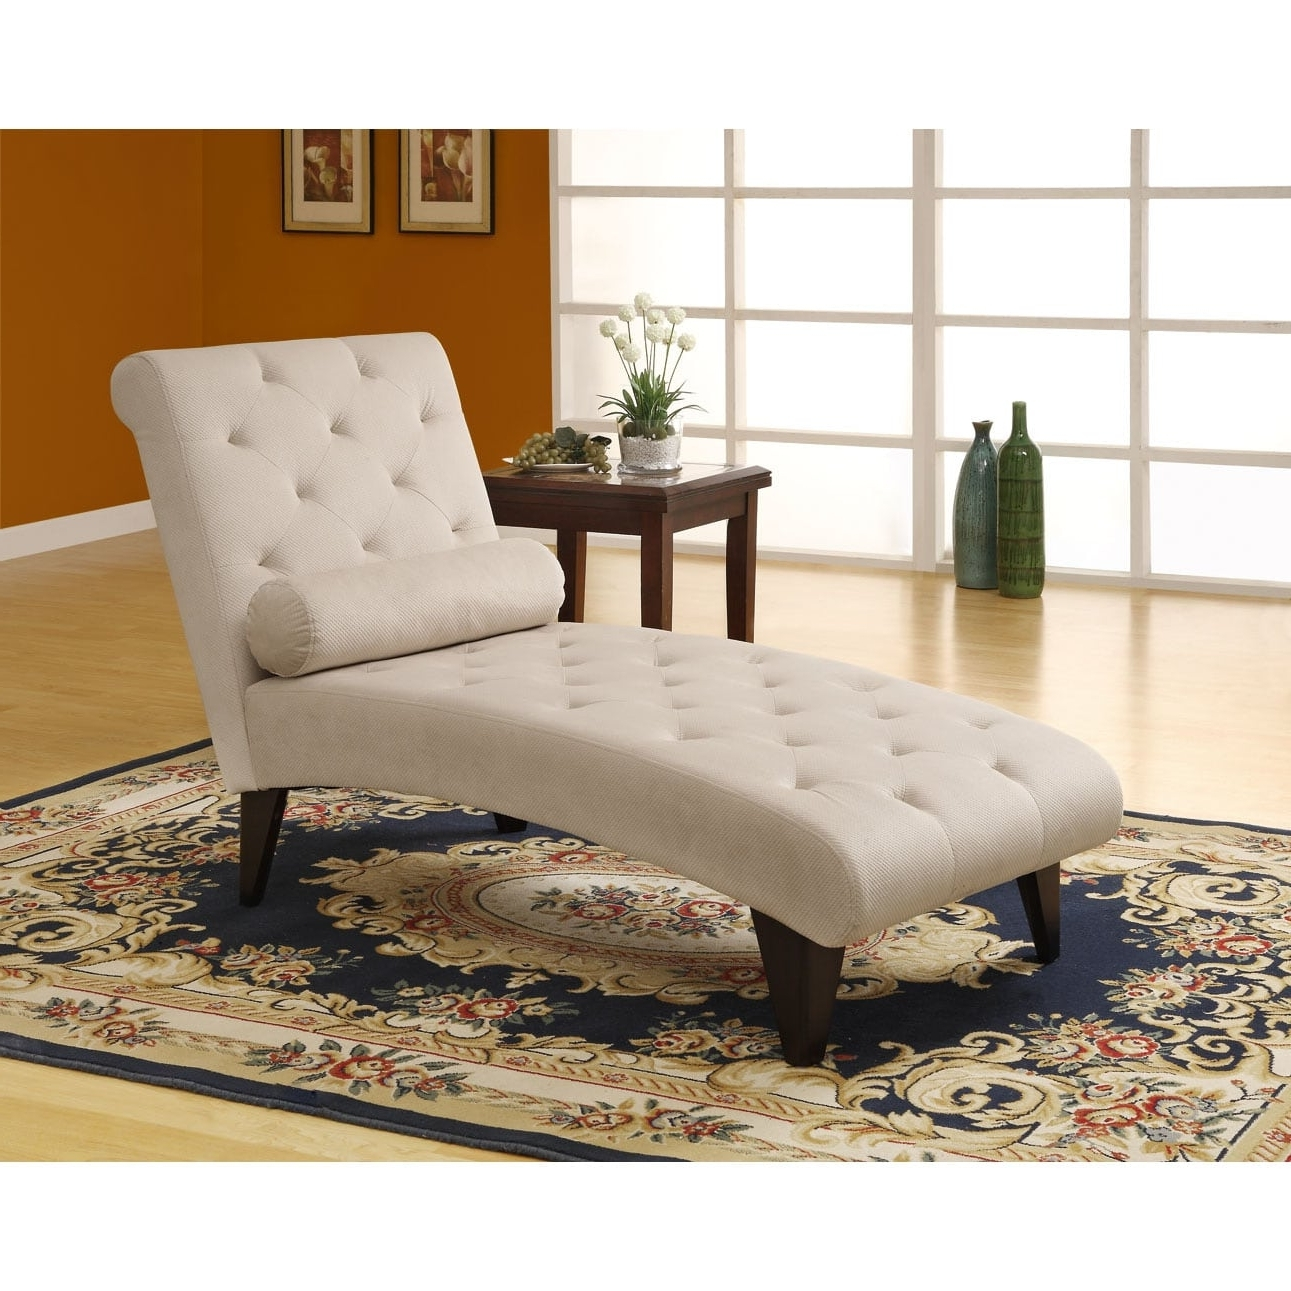 Most Recent Overstock Chaises With Regard To Taupe Velvet Fabric Chaise Lounger – Free Shipping Today (View 6 of 15)